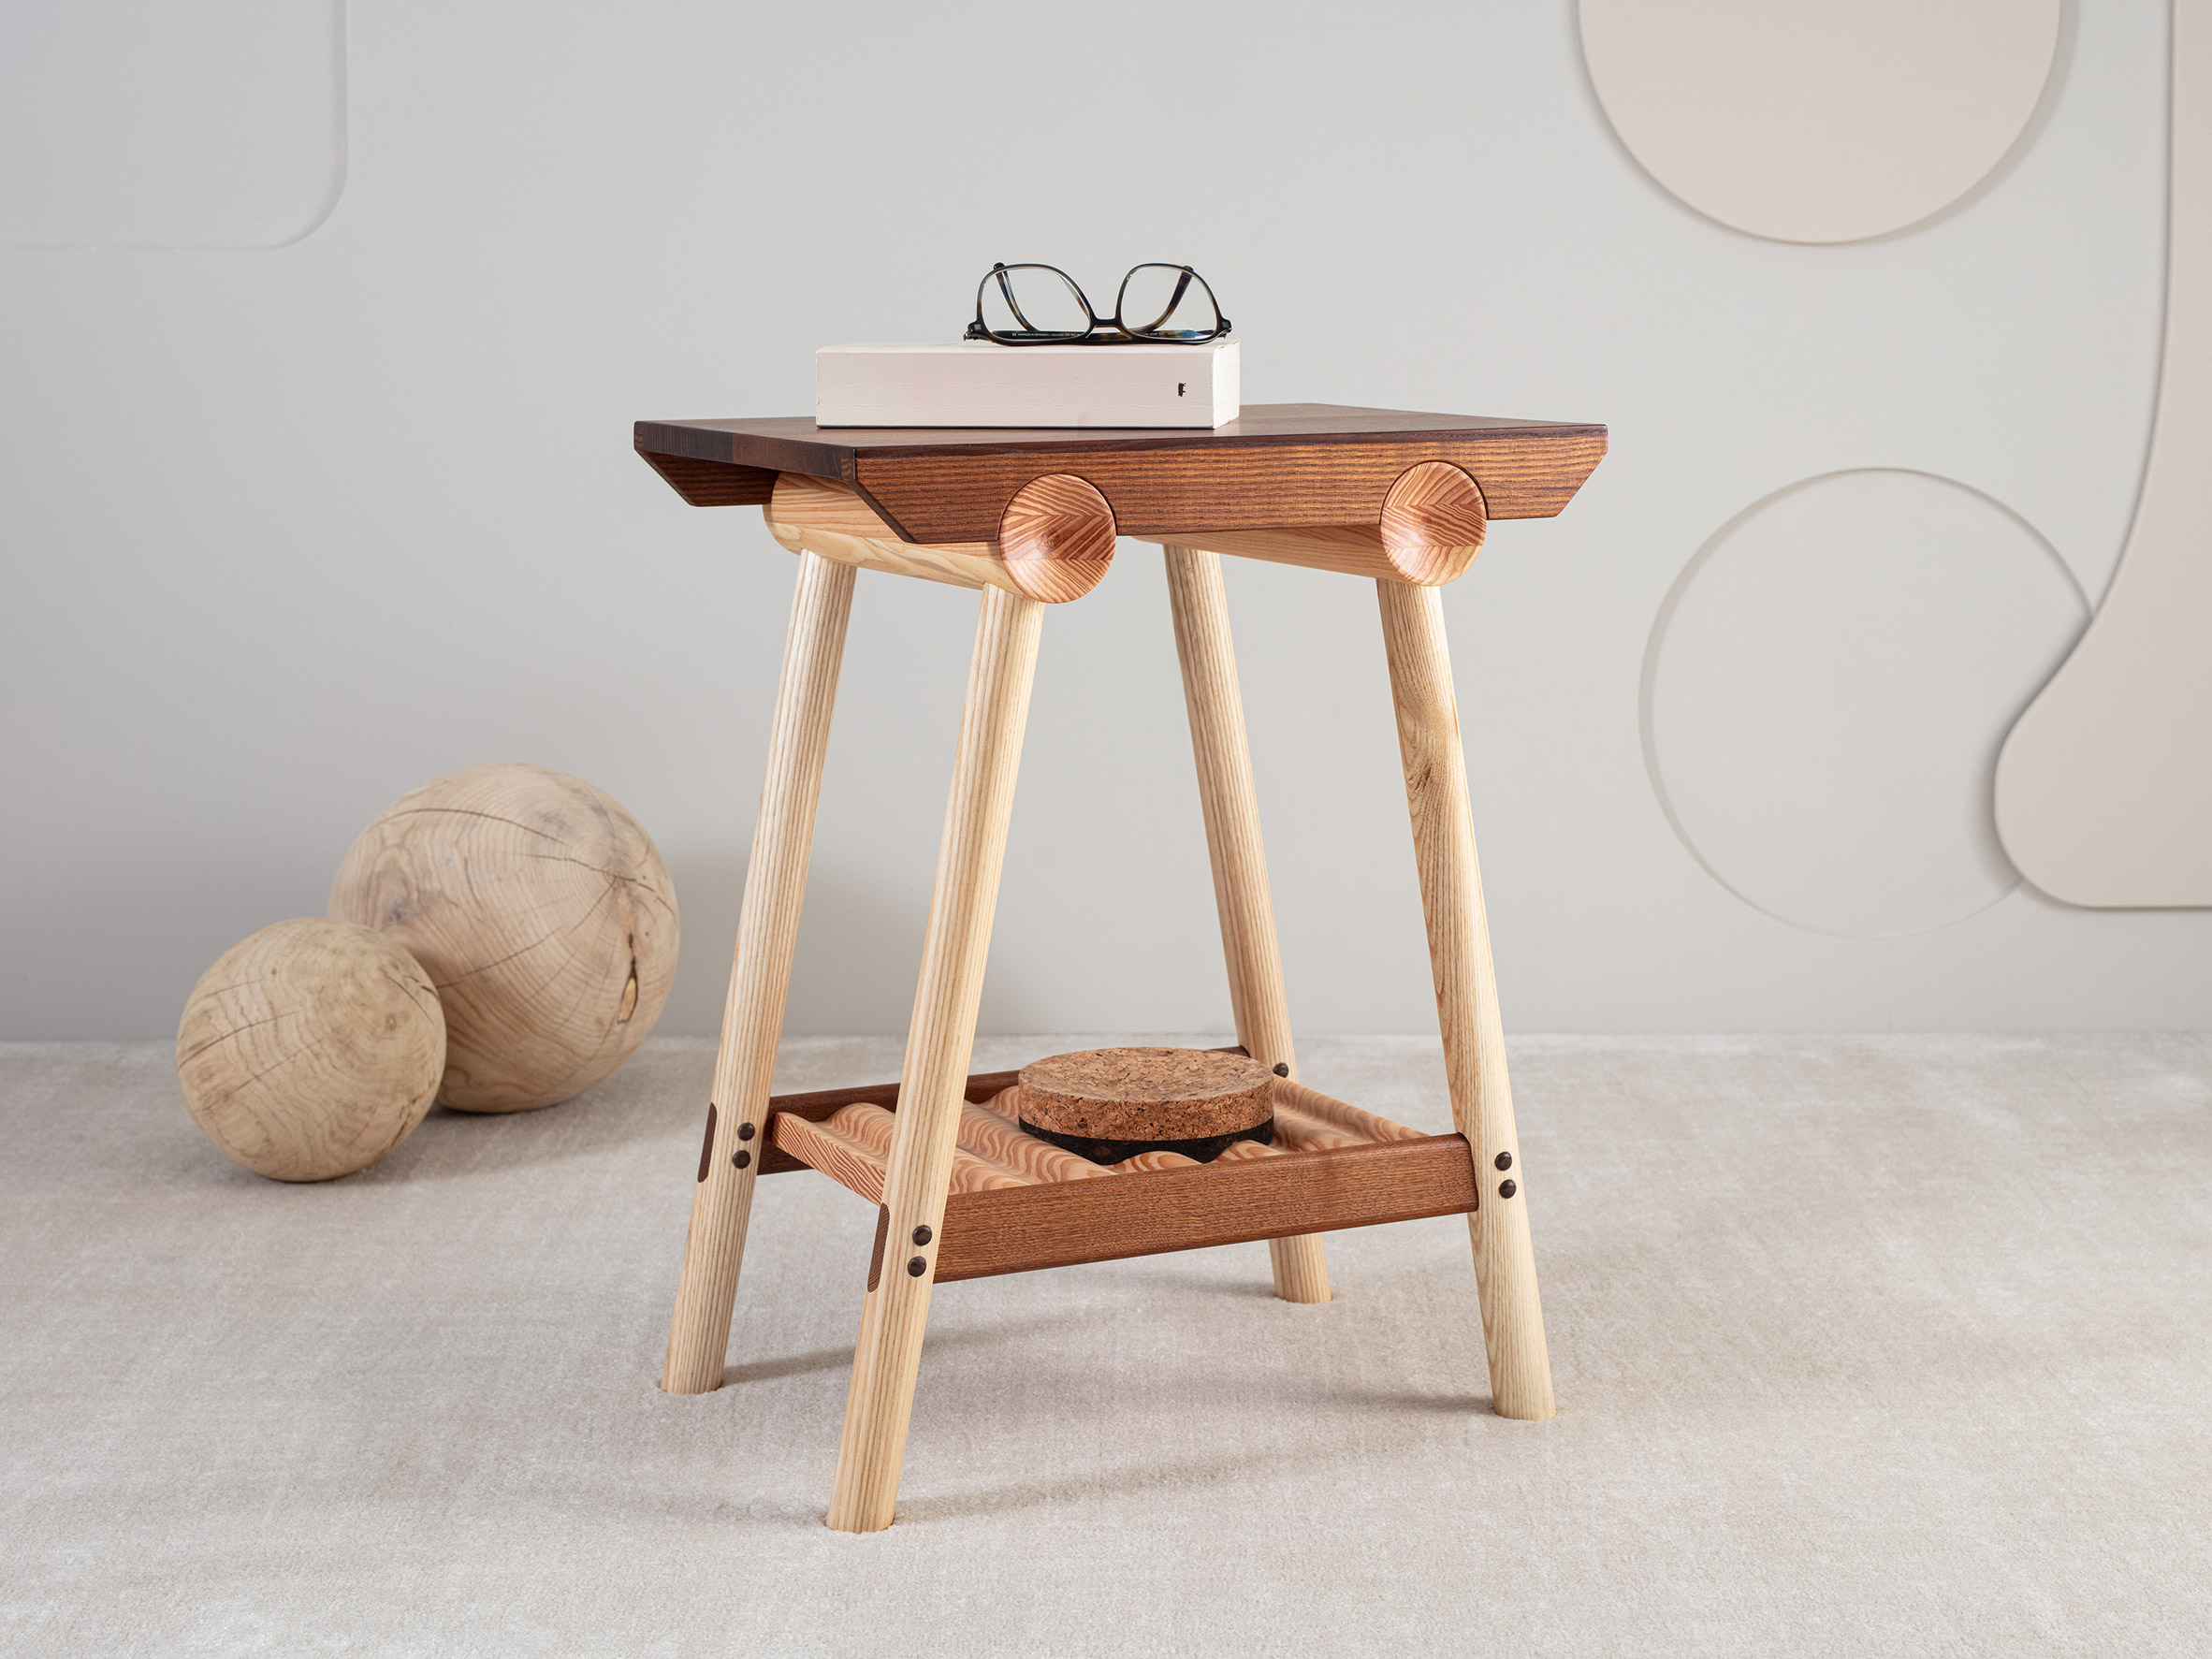 The side table from Jan Hendzel Studio's collection made using British hardwood